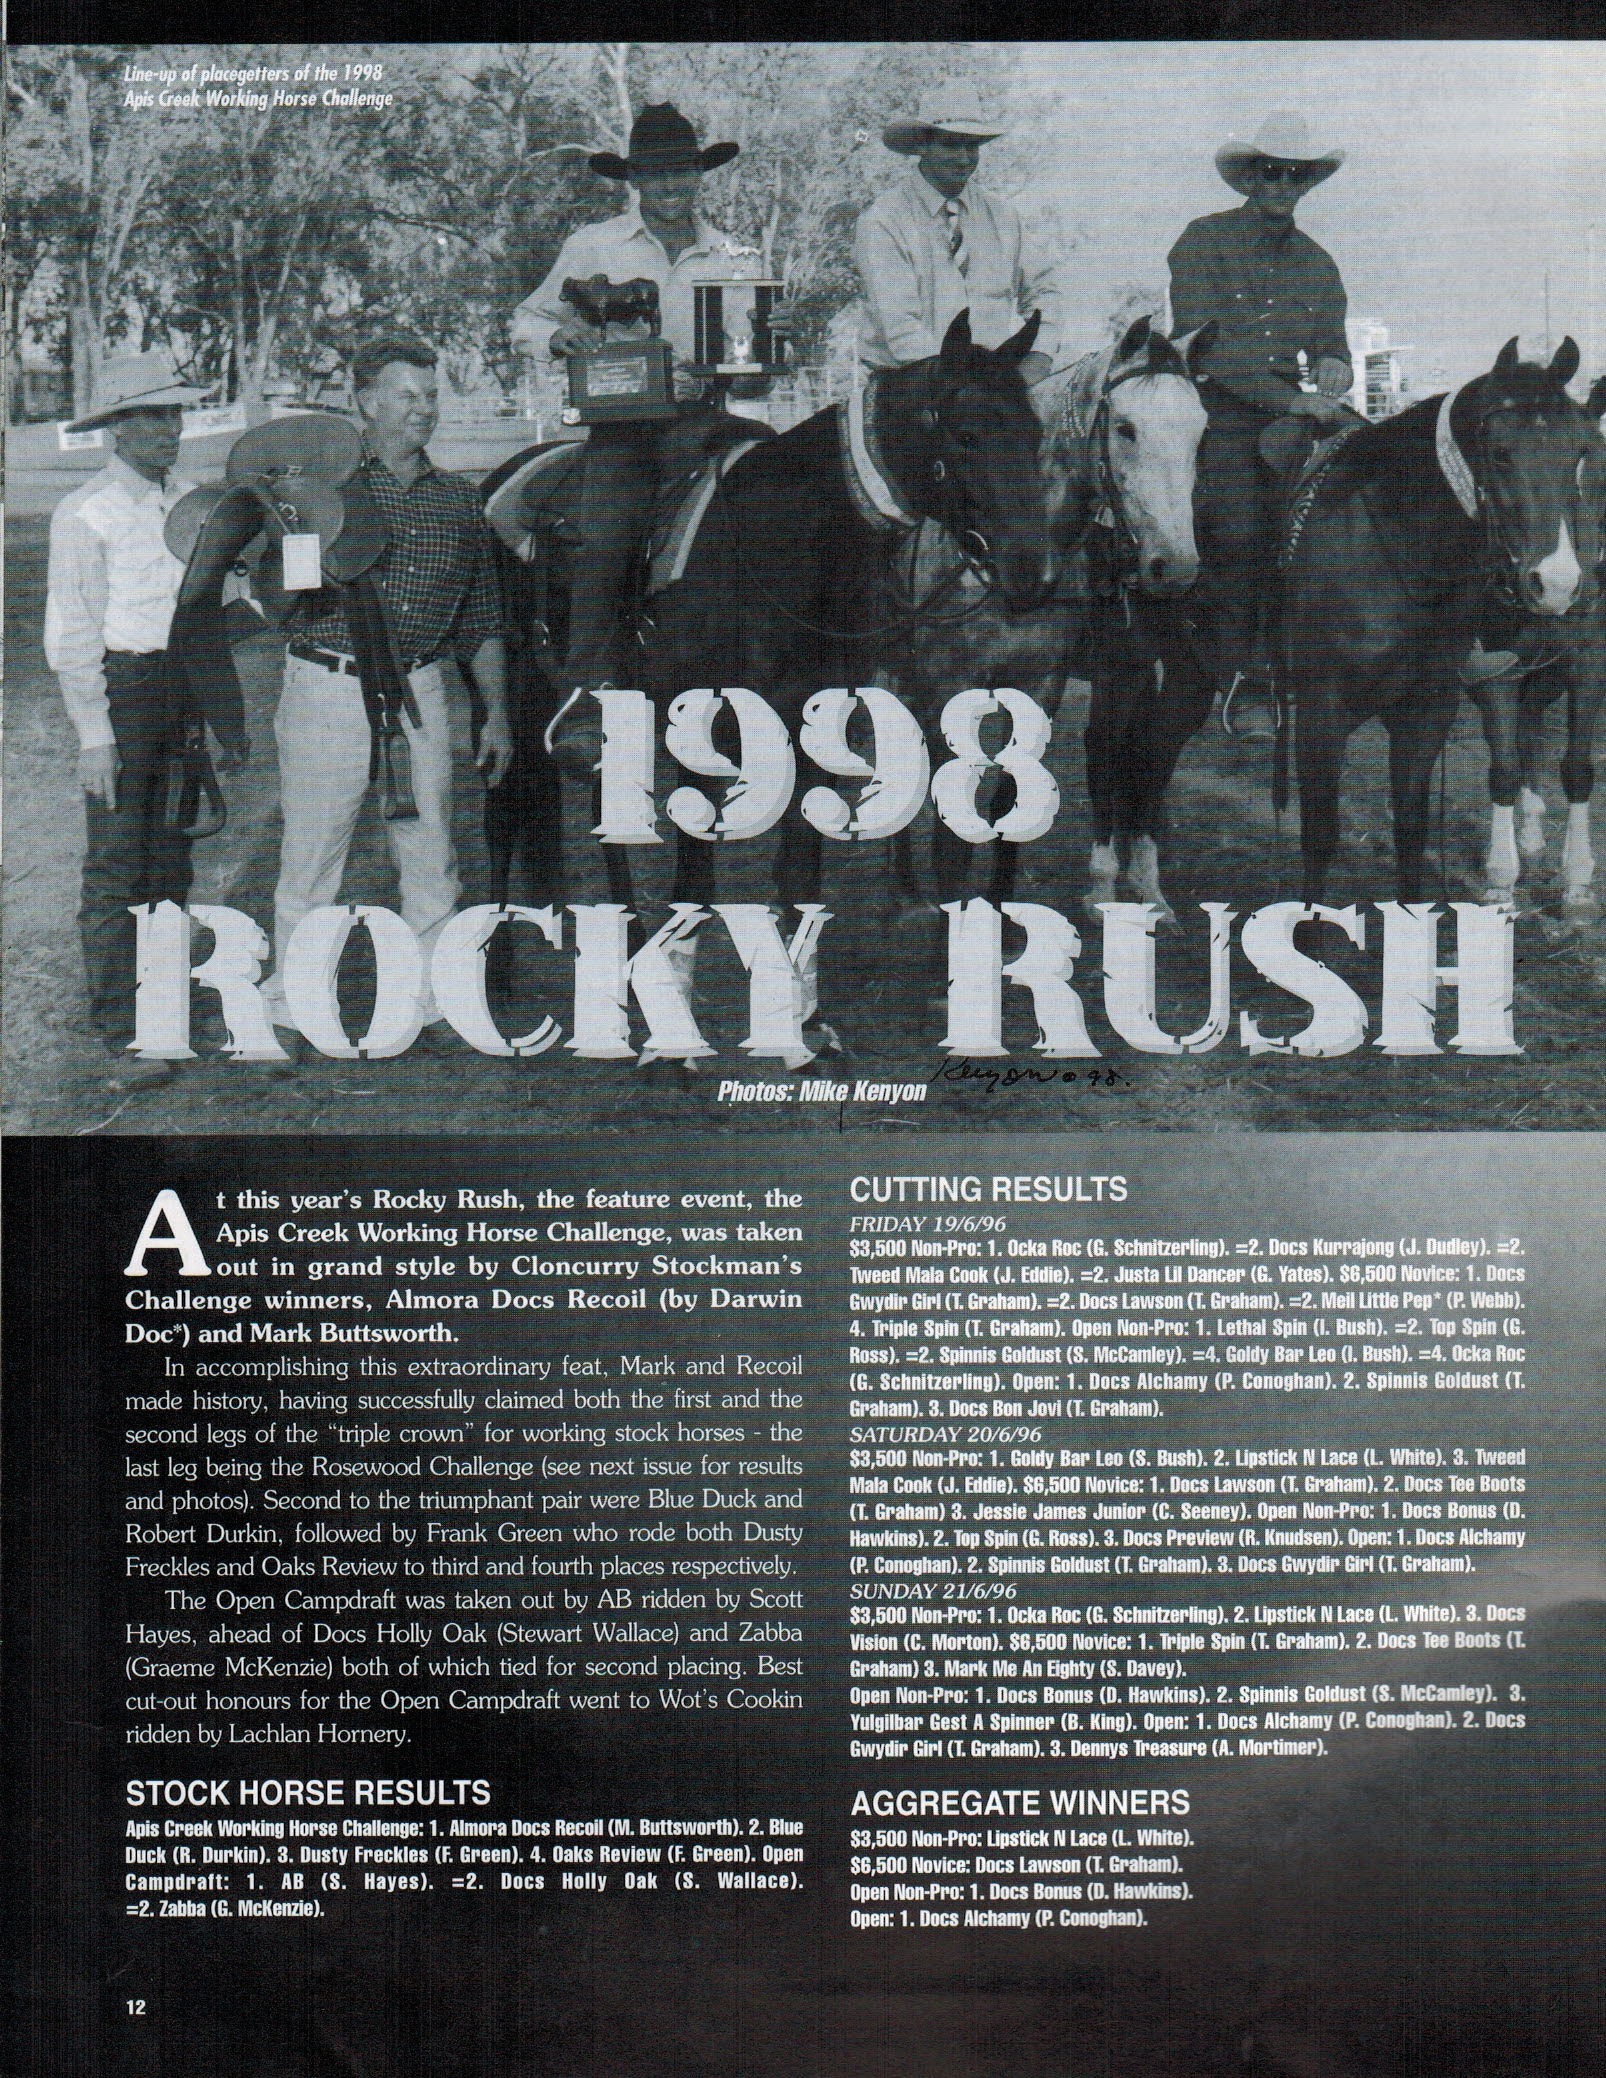 'Rocky Rush' article, featuring Paul Hill second from the left.